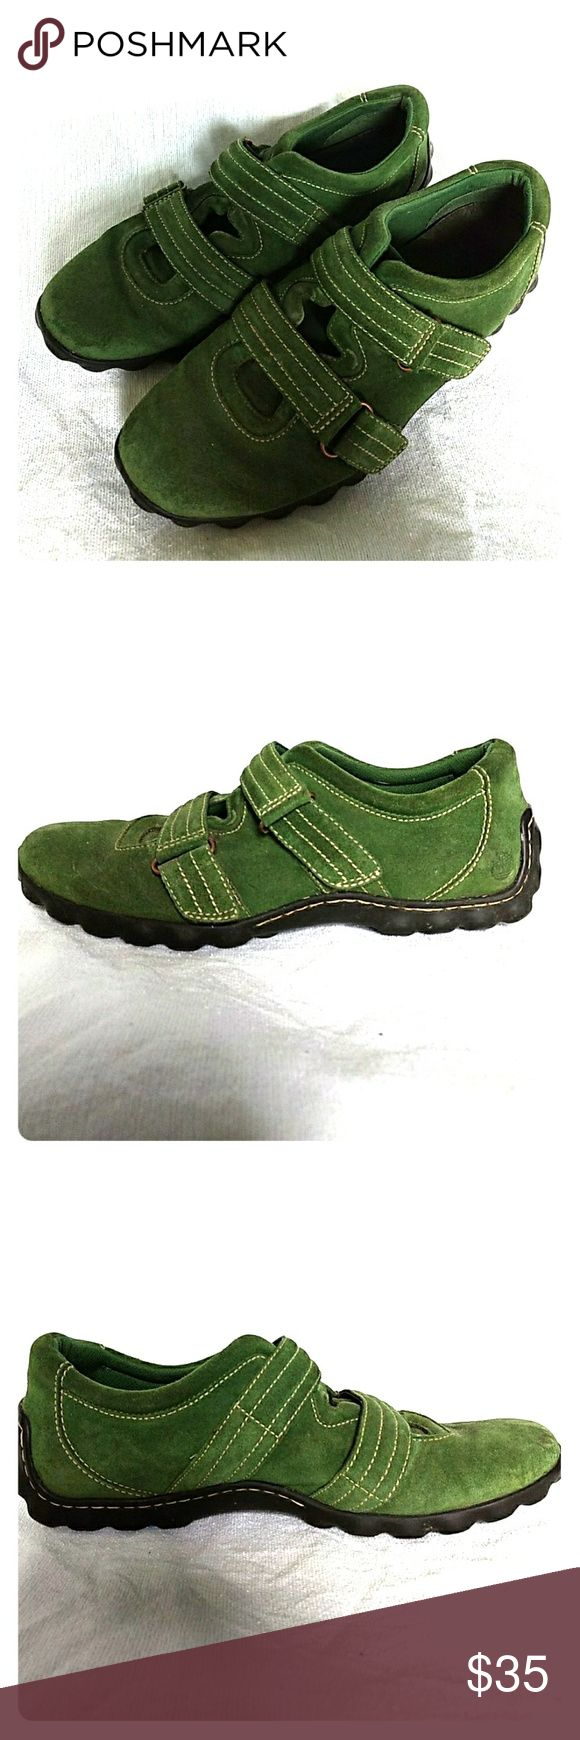 Timberland green suede walking shoes Green suede fashion walking sneakers Timberland Shoes Sneakers